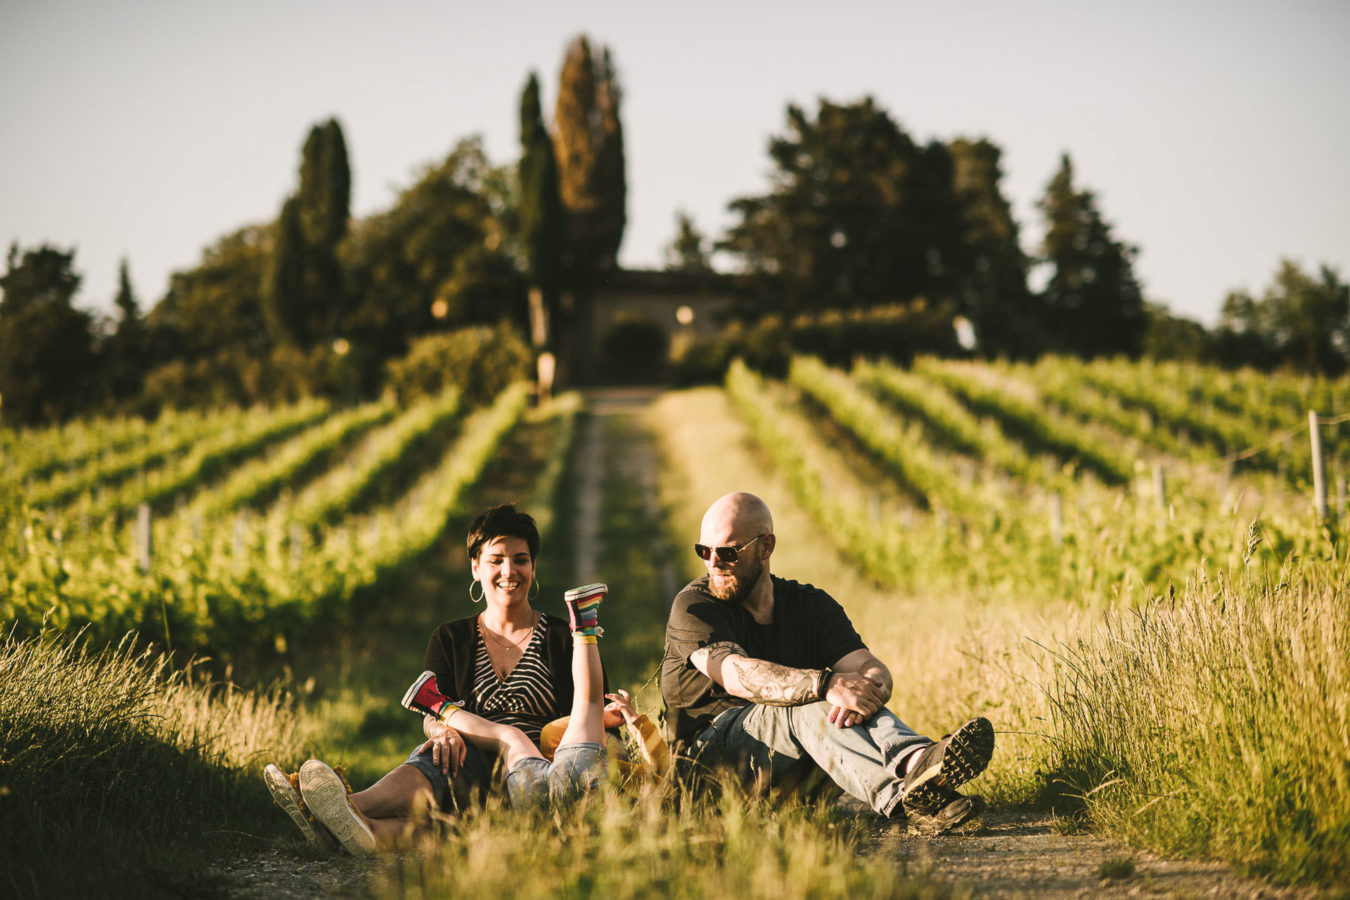 Exciting and funny family photo shoot in Tuscany countryside of historical town of Peccioli